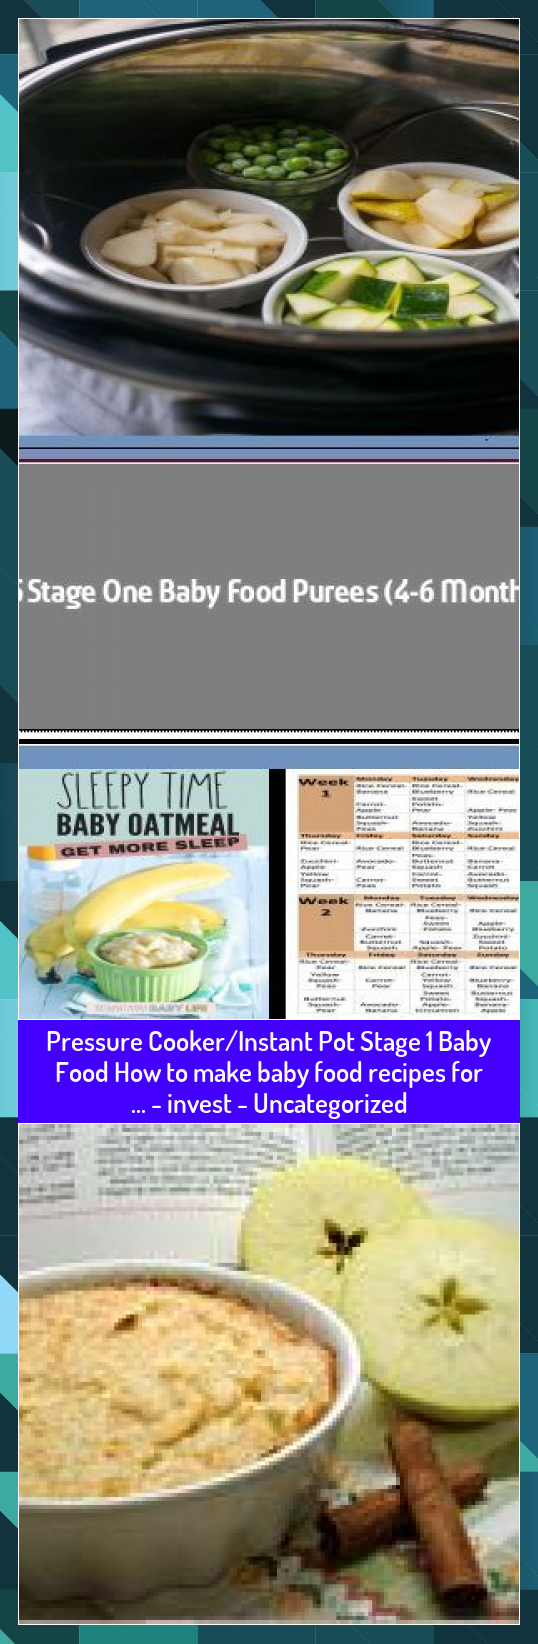 Pressure CookerInstant Pot Stage 1 Baby Food How to make baby food recipes for   invest  Uncategorized